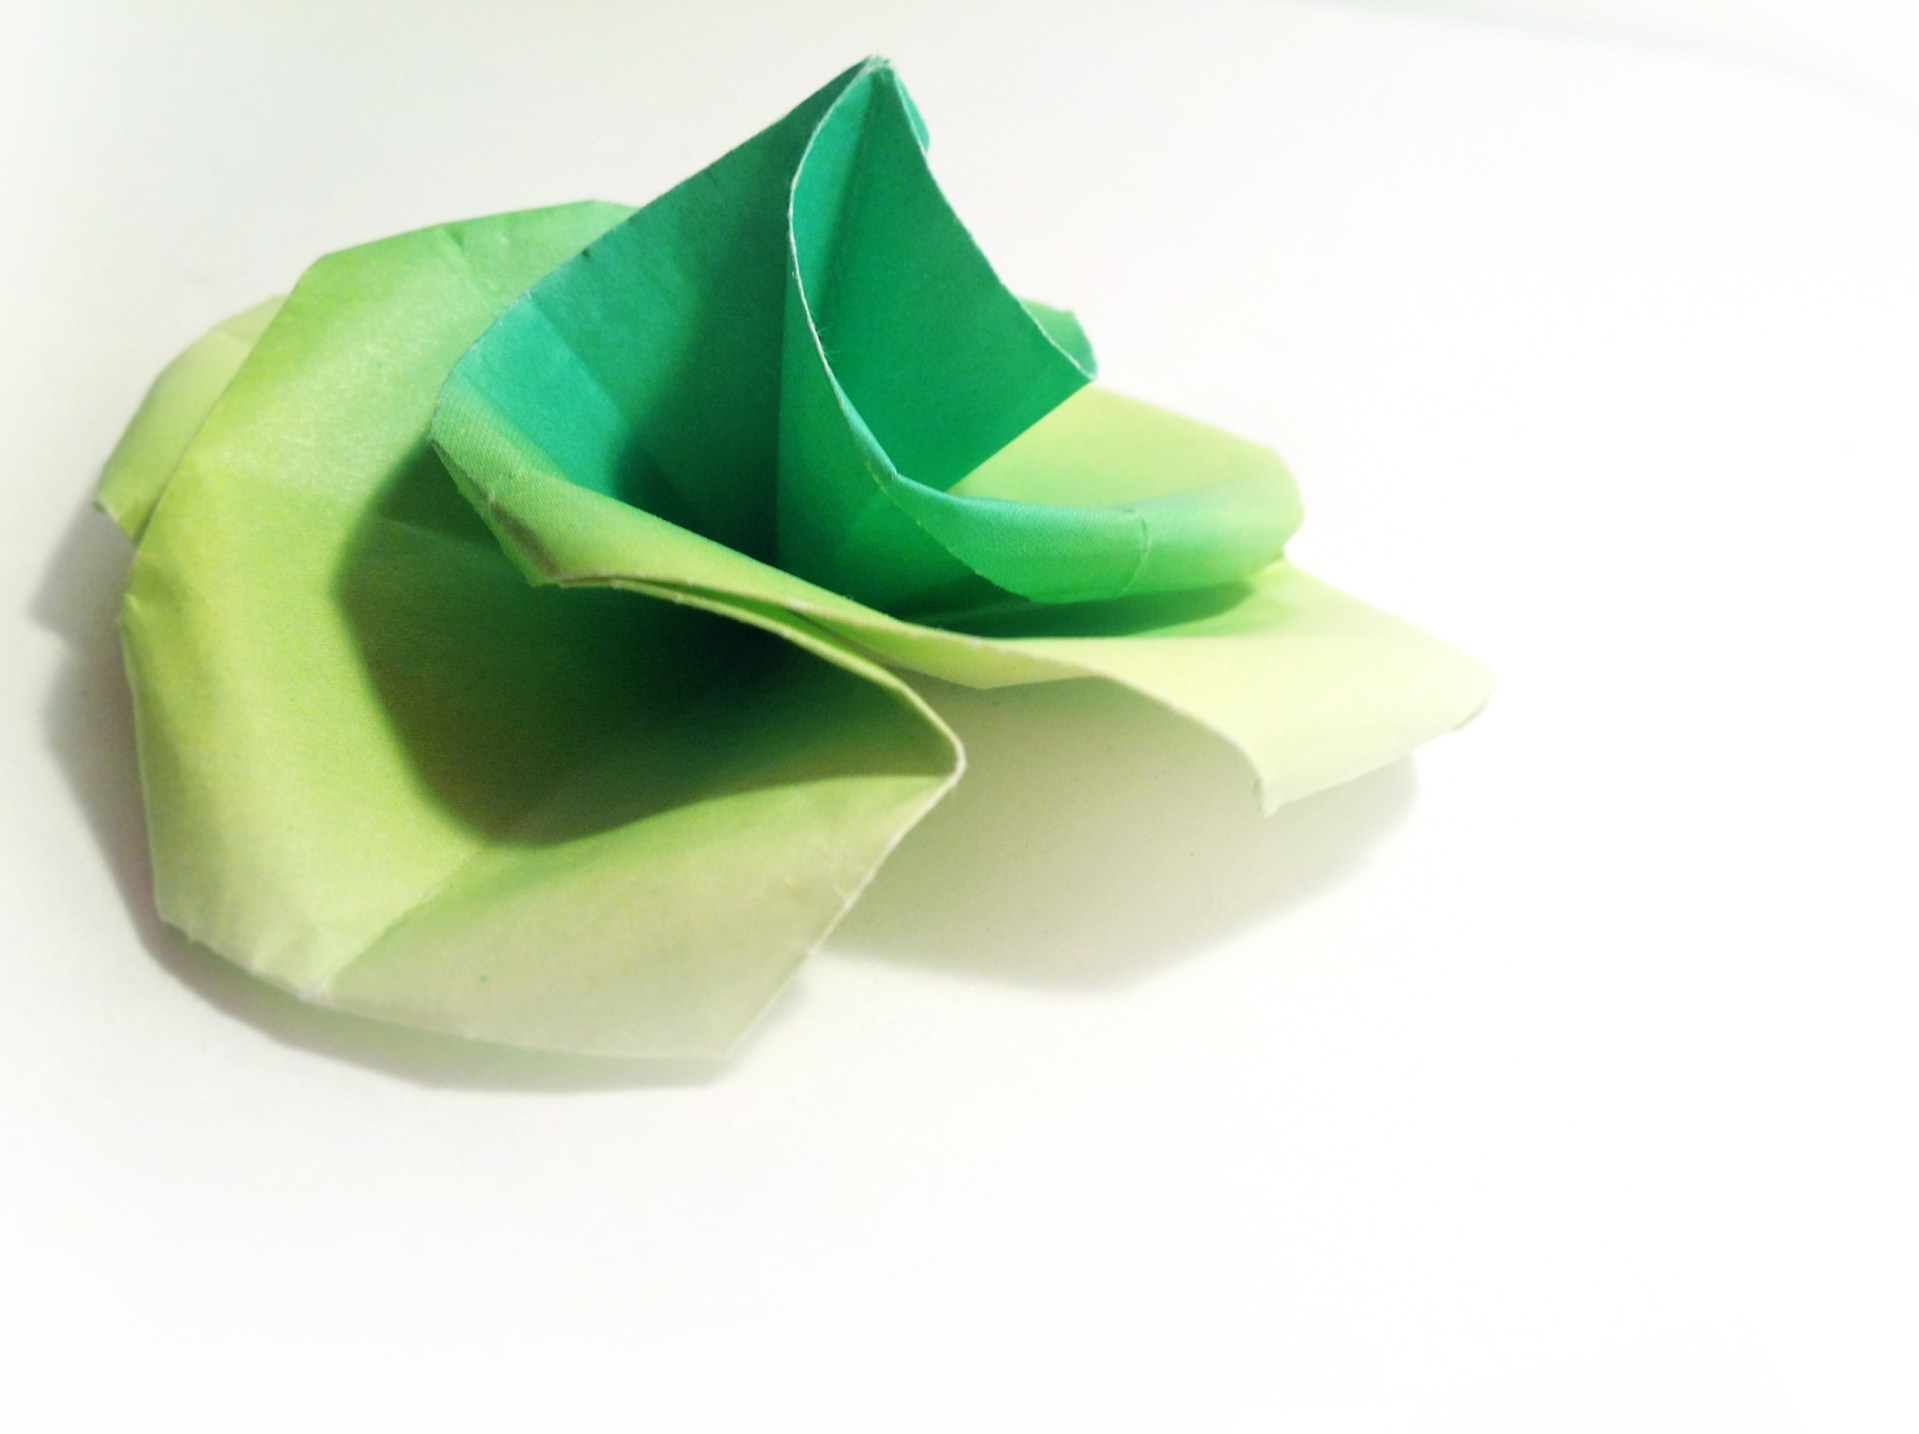 Green Swirl Origami Rose by Carrie Gates